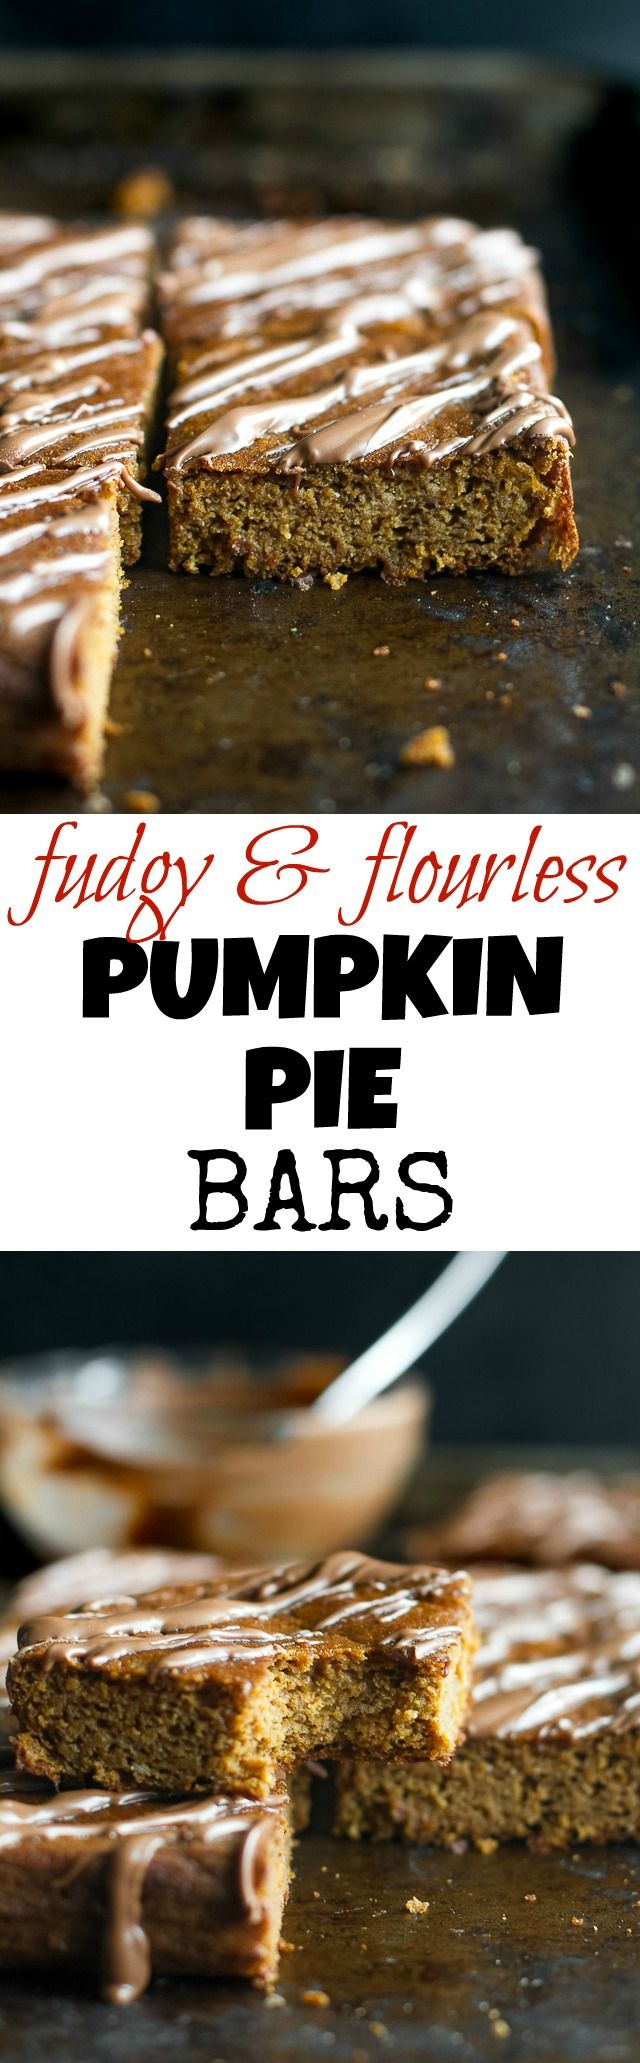 These flourless pumpkin pie bars are so tender and fudgy that you'd never know they're 100% healthy and made with NO flour, butter, oil, or refined sugar! | runningwithspoons.com